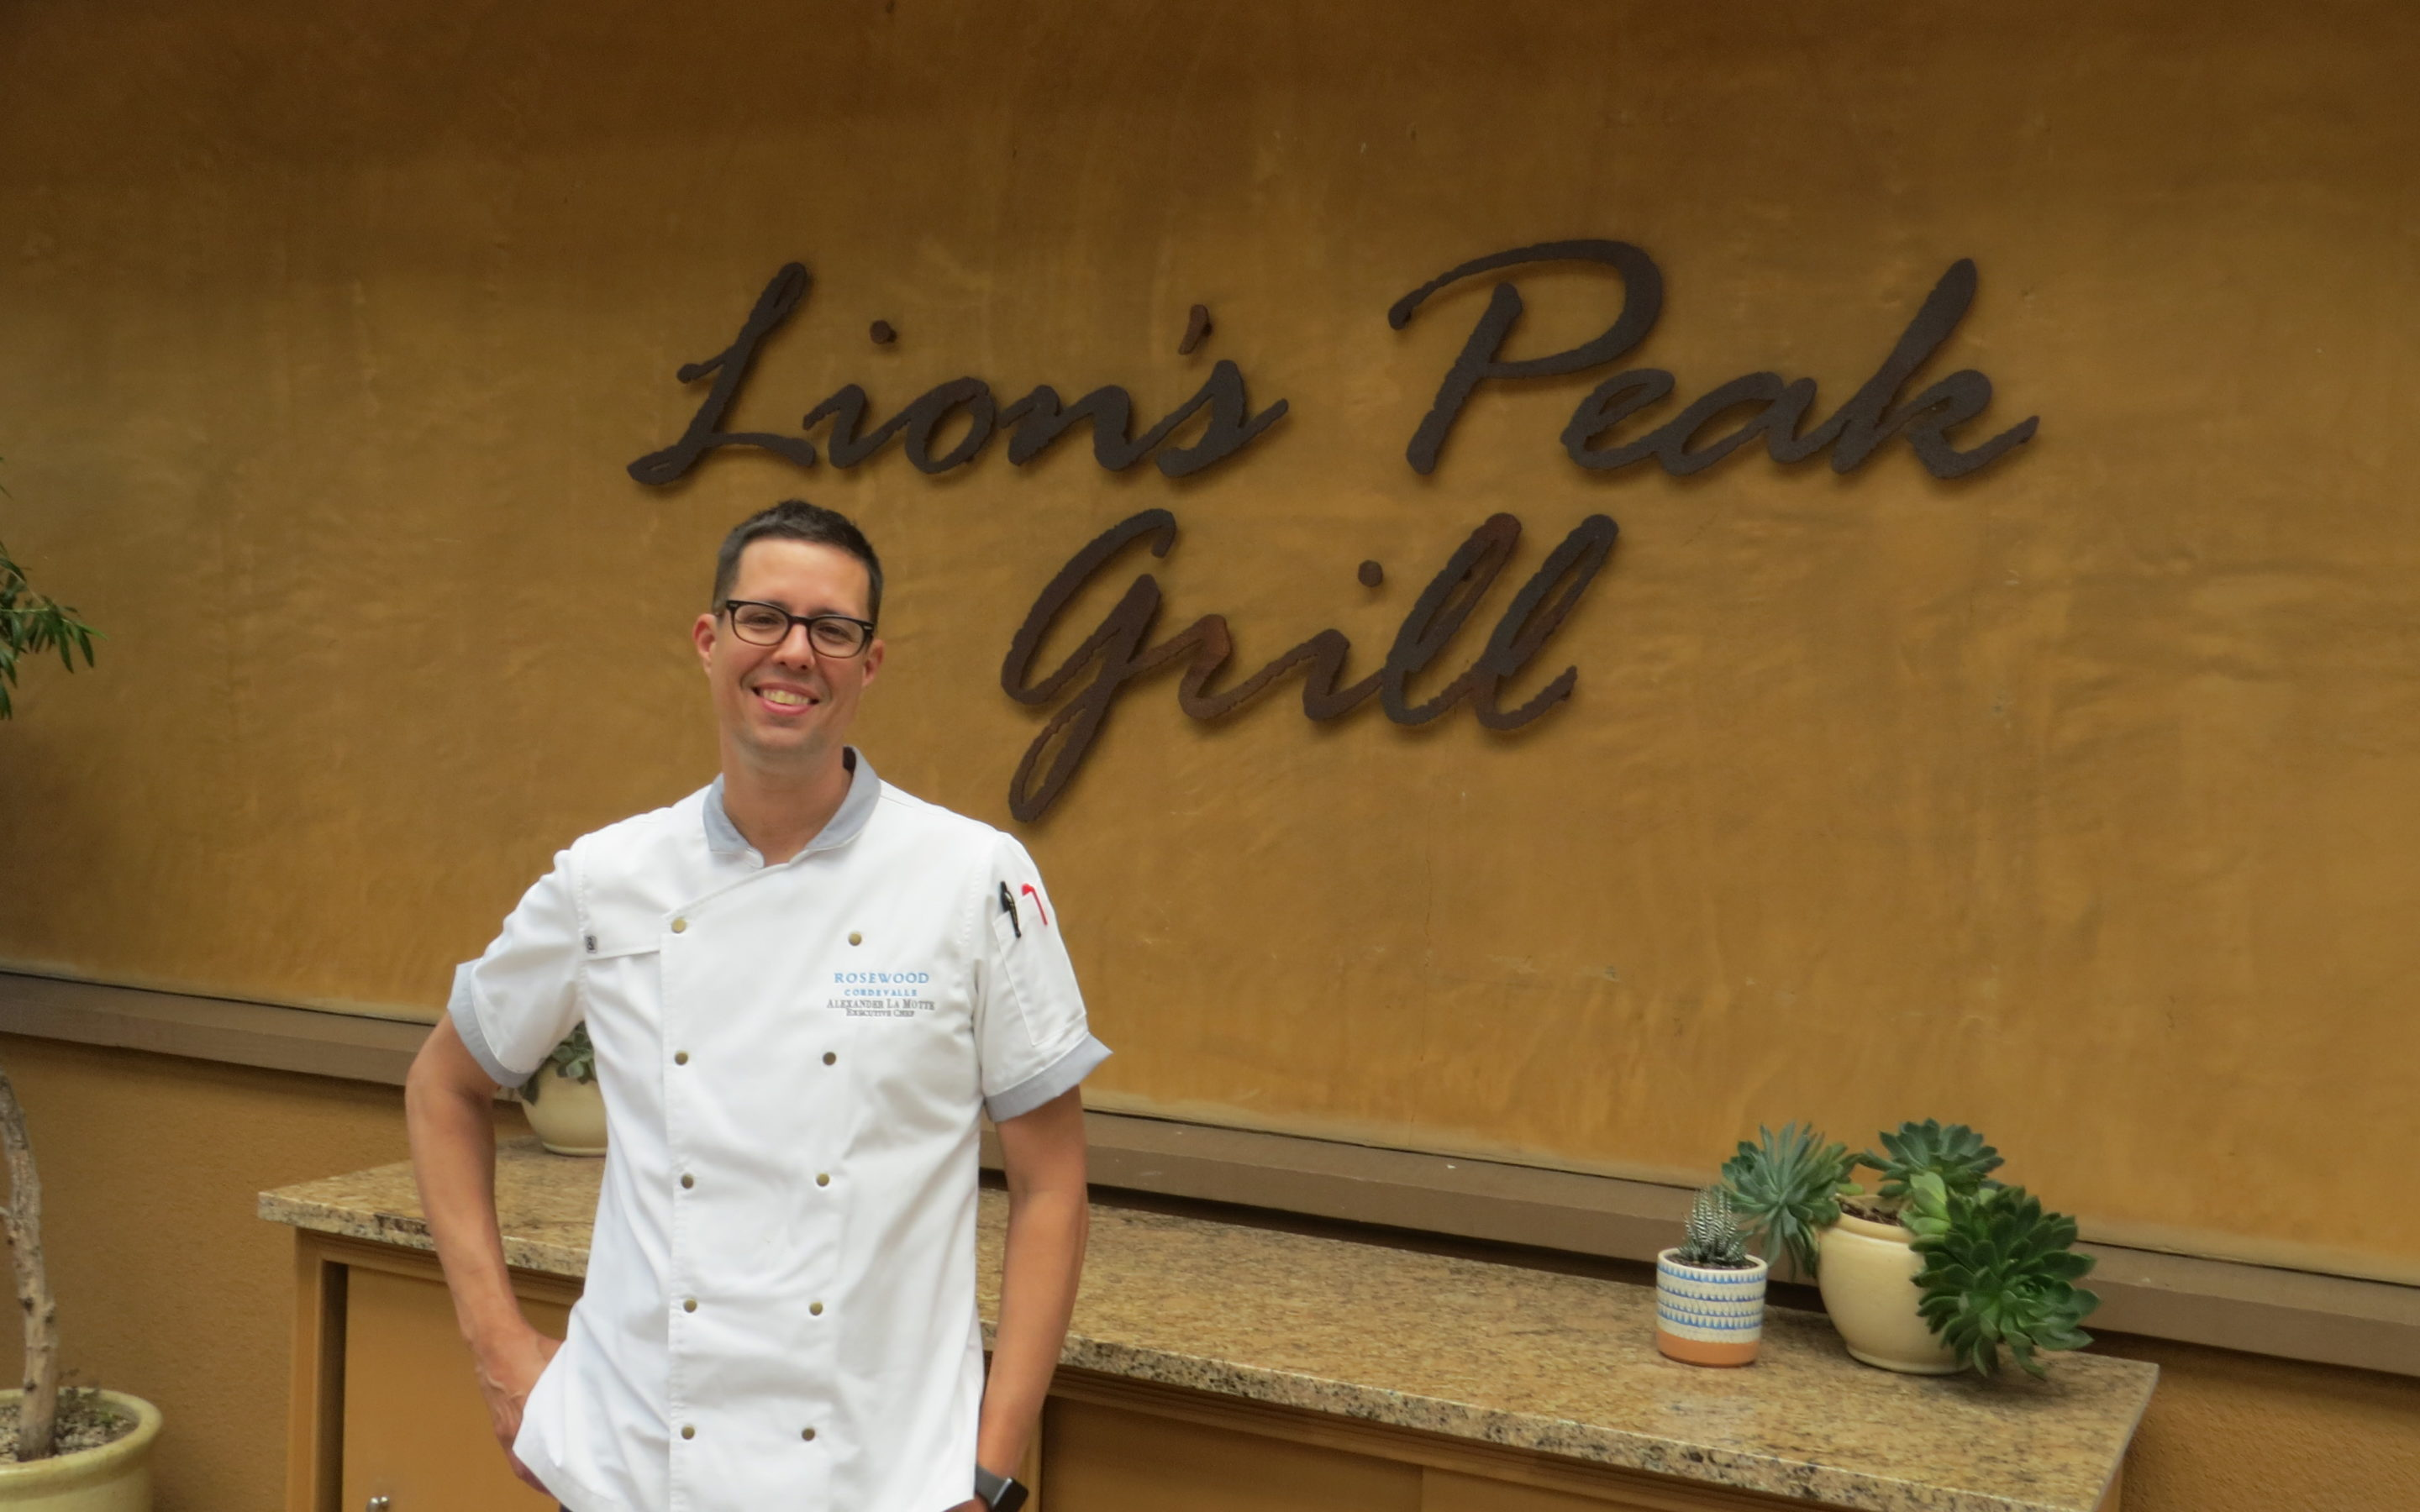 Illinois man followed passion and became renowned SV chef